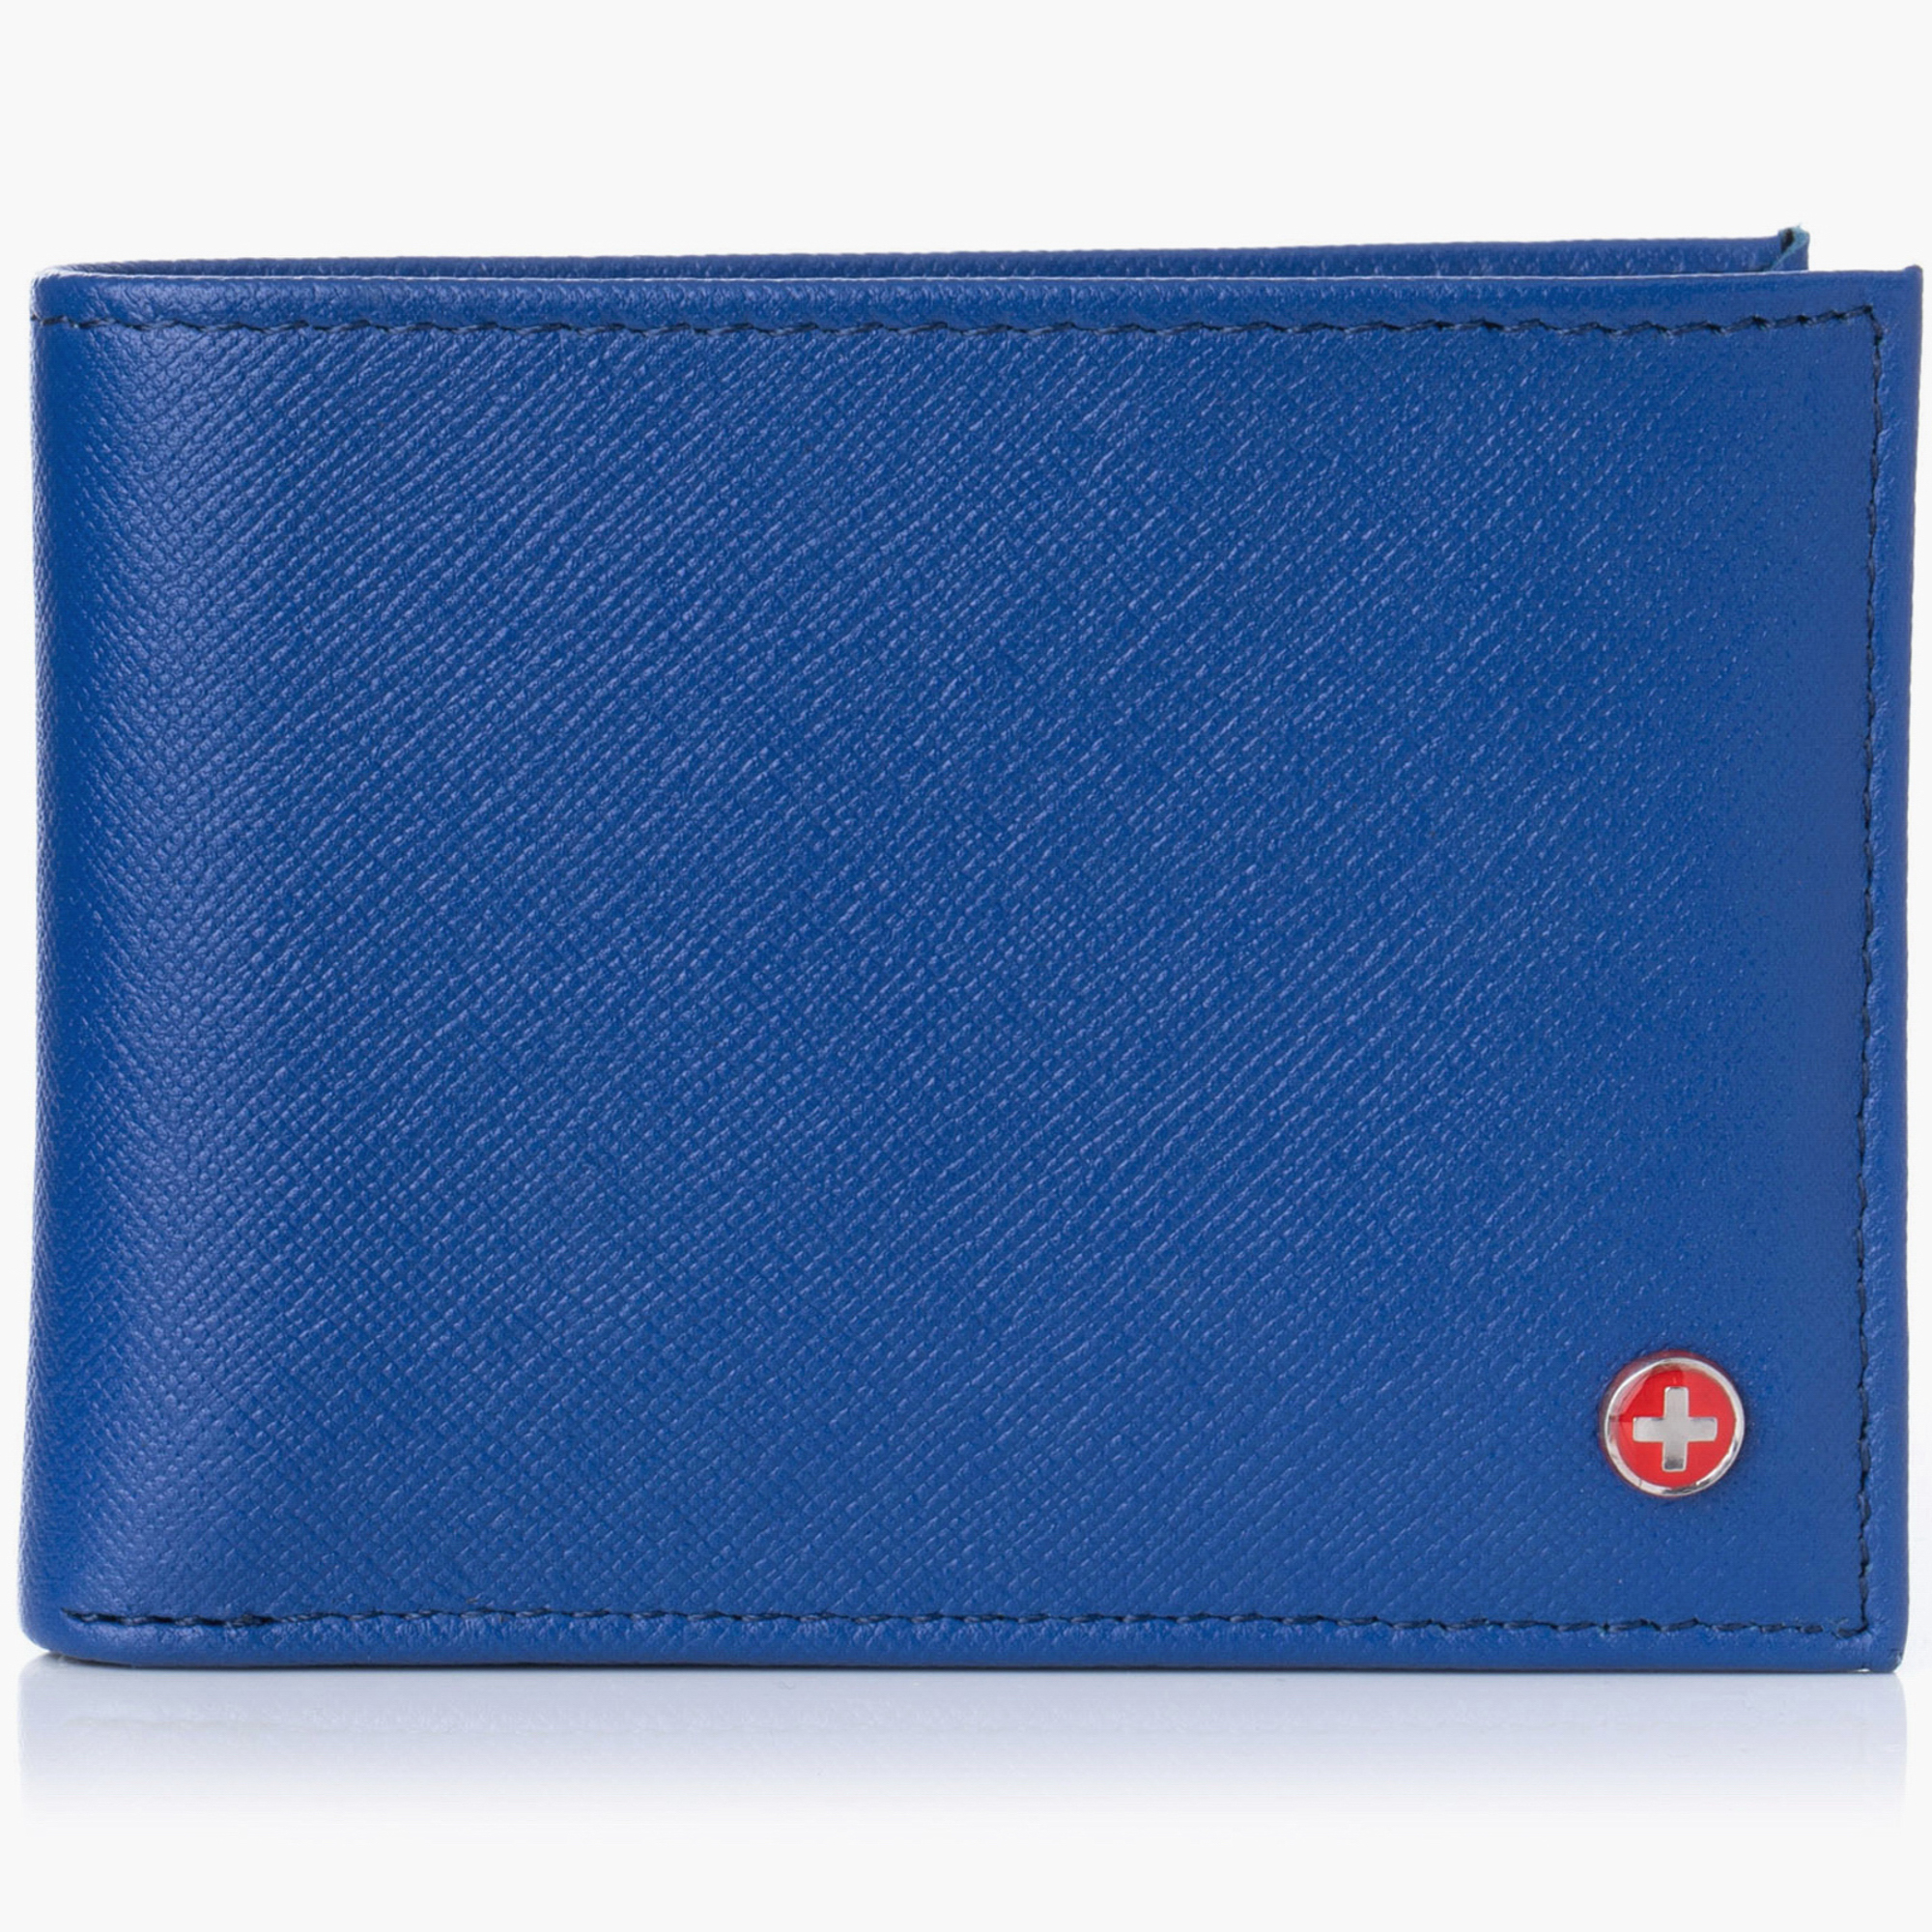 Alpine-Swiss-Mens-Wallet-Genuine-Leather-Removable-ID-Card-Case-Bifold-Passcase thumbnail 54